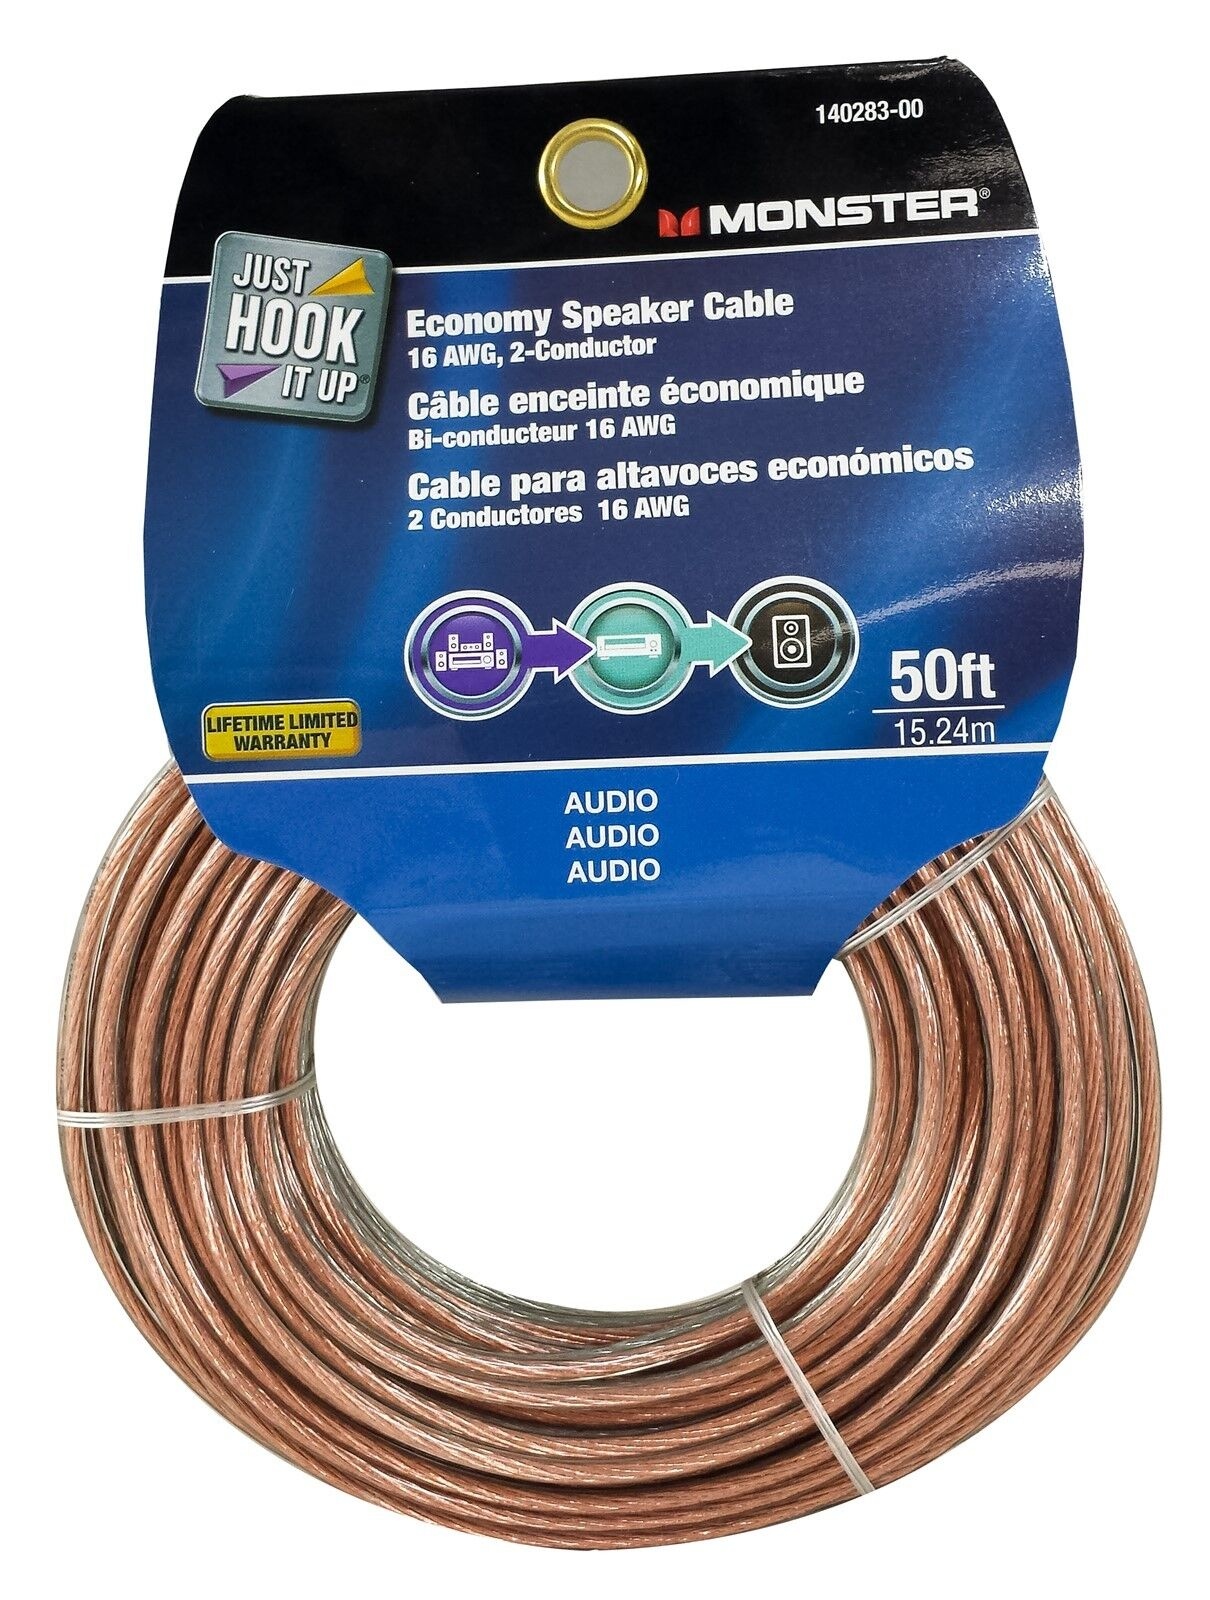 Details about Monster Cable Economy Audio Speaker Wire 9 Gauge - 9 Ft